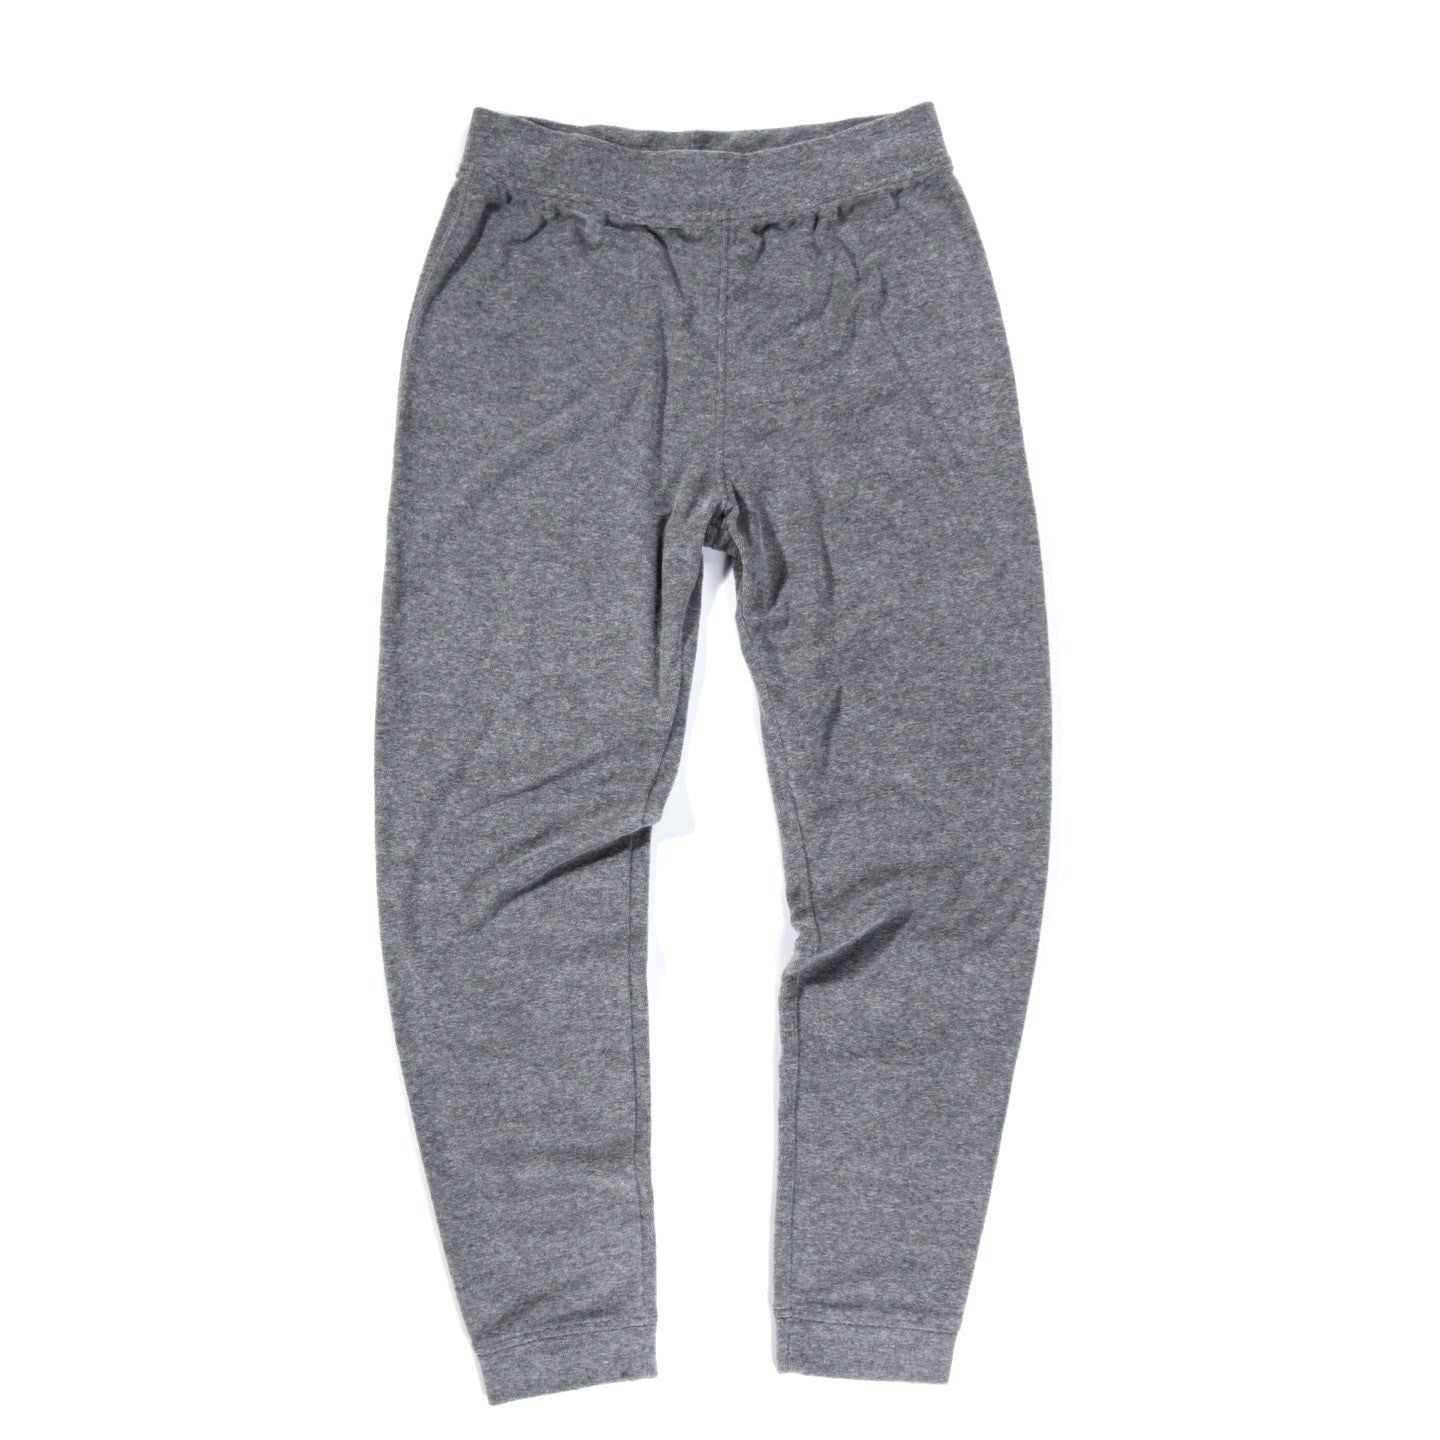 A.P.C. GERE JOGGER HEATHERED GREY